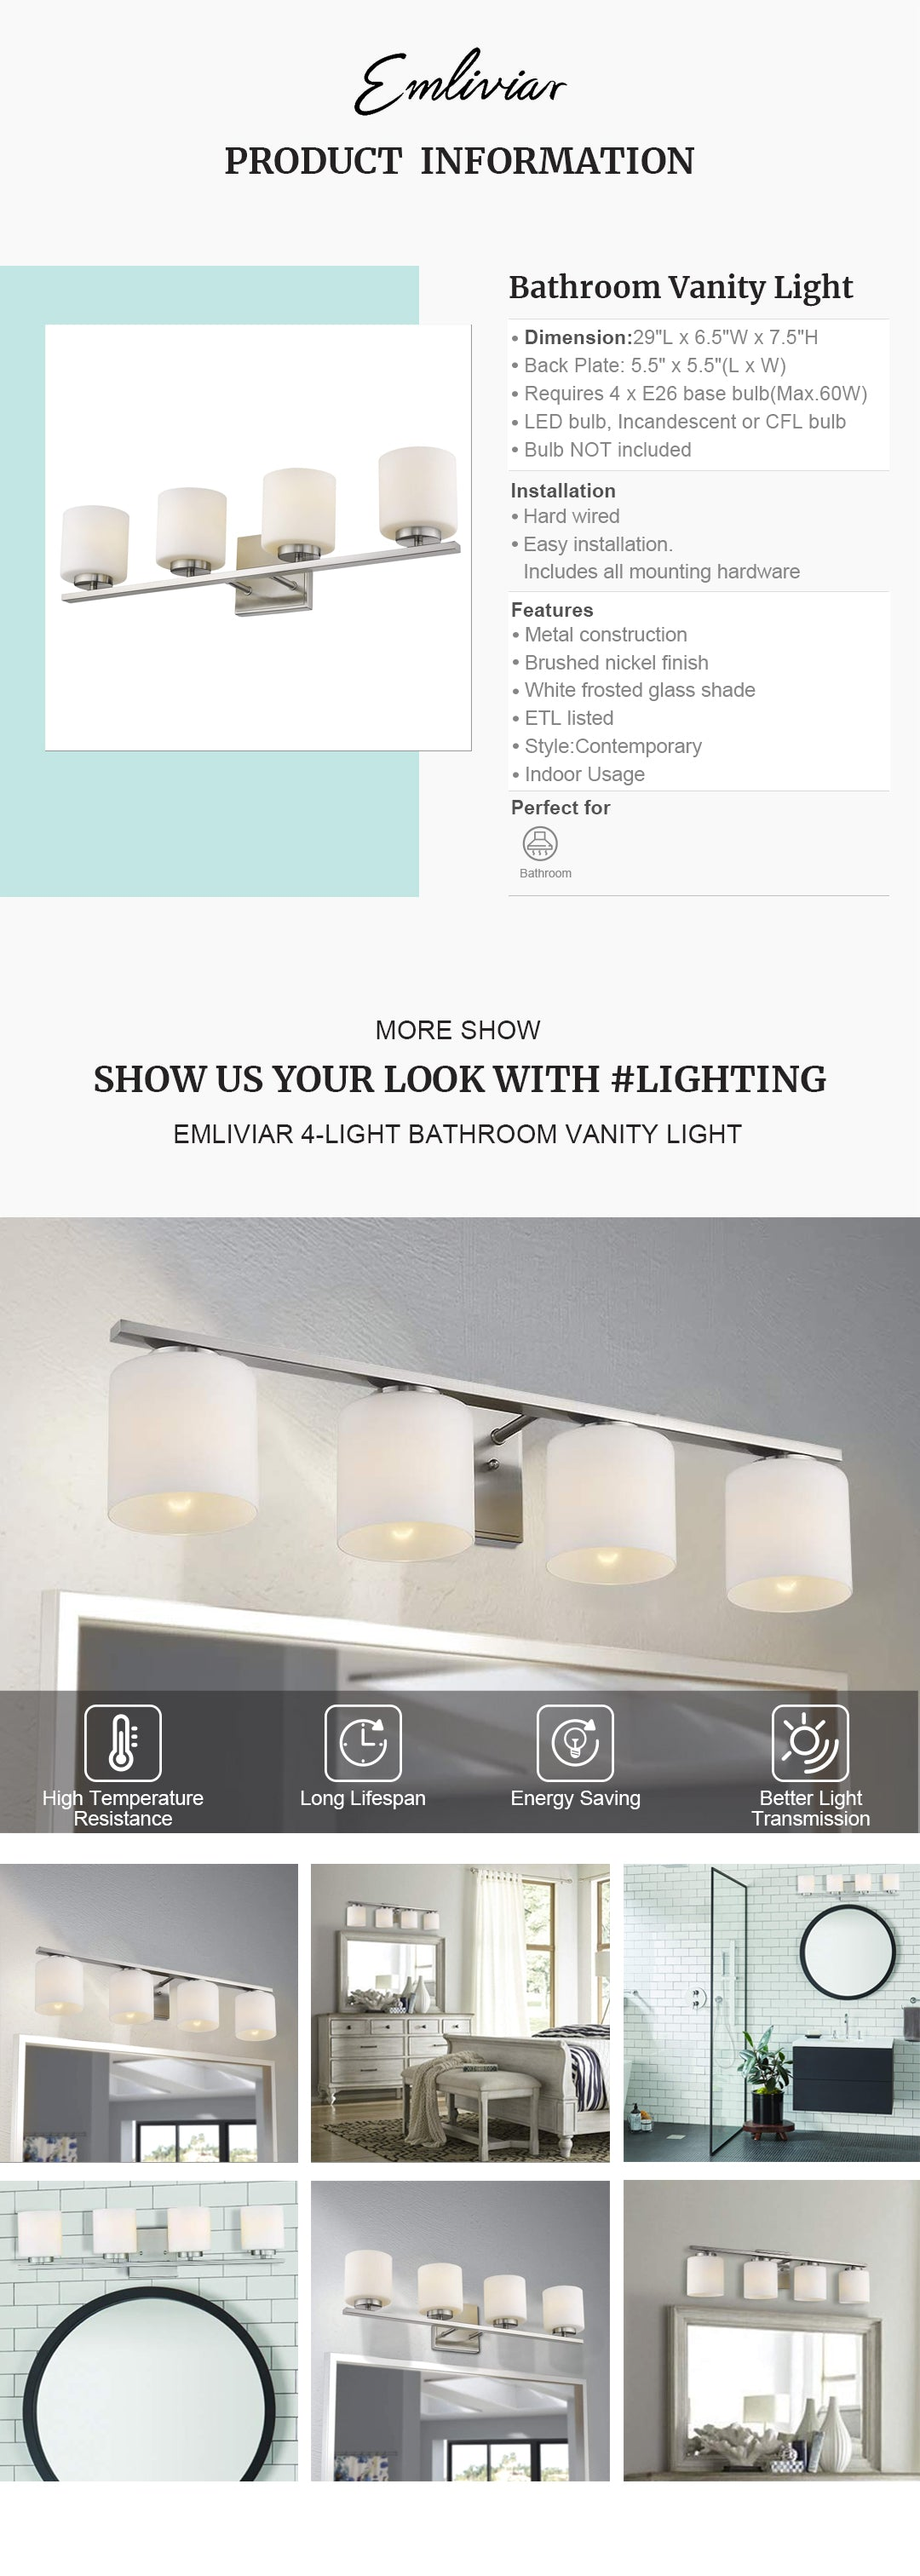 """Modern 4 light bathroom vanity light fixture features sturdy metal construction in brushed nickel finish with white frosted glass shade Easy installation. Includes all mounting hardware. Perfect for your bathroom, dressing table, mirror cabinets, vanity table and art display etc. Hard wired. Requires 4 x E26 base bulb(Max.60W). Bulb NOT included Fixture can be mounted facing upward or downward. ETL Listed with a one-year warranty Dimension: 29"""" x 6.5"""" x 7.5""""(L x W x D); Back Plate: 5.5"""" x 5.5""""(L x W)"""